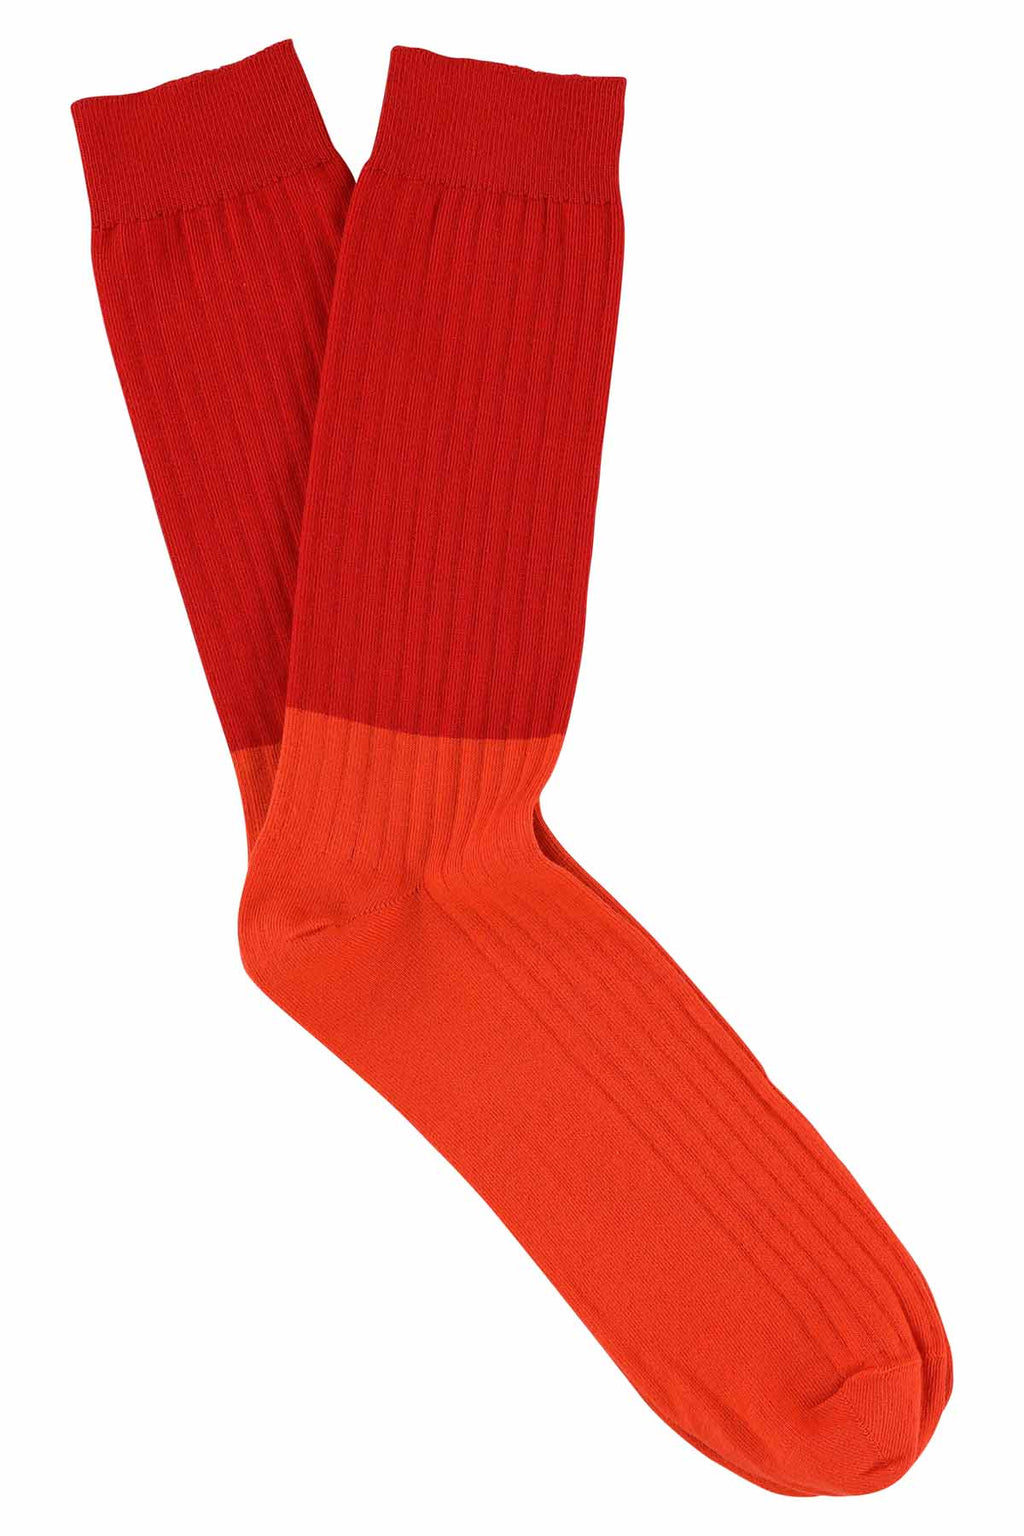 Escuyer socks -  Colour Block Chinese Red / Poinciana